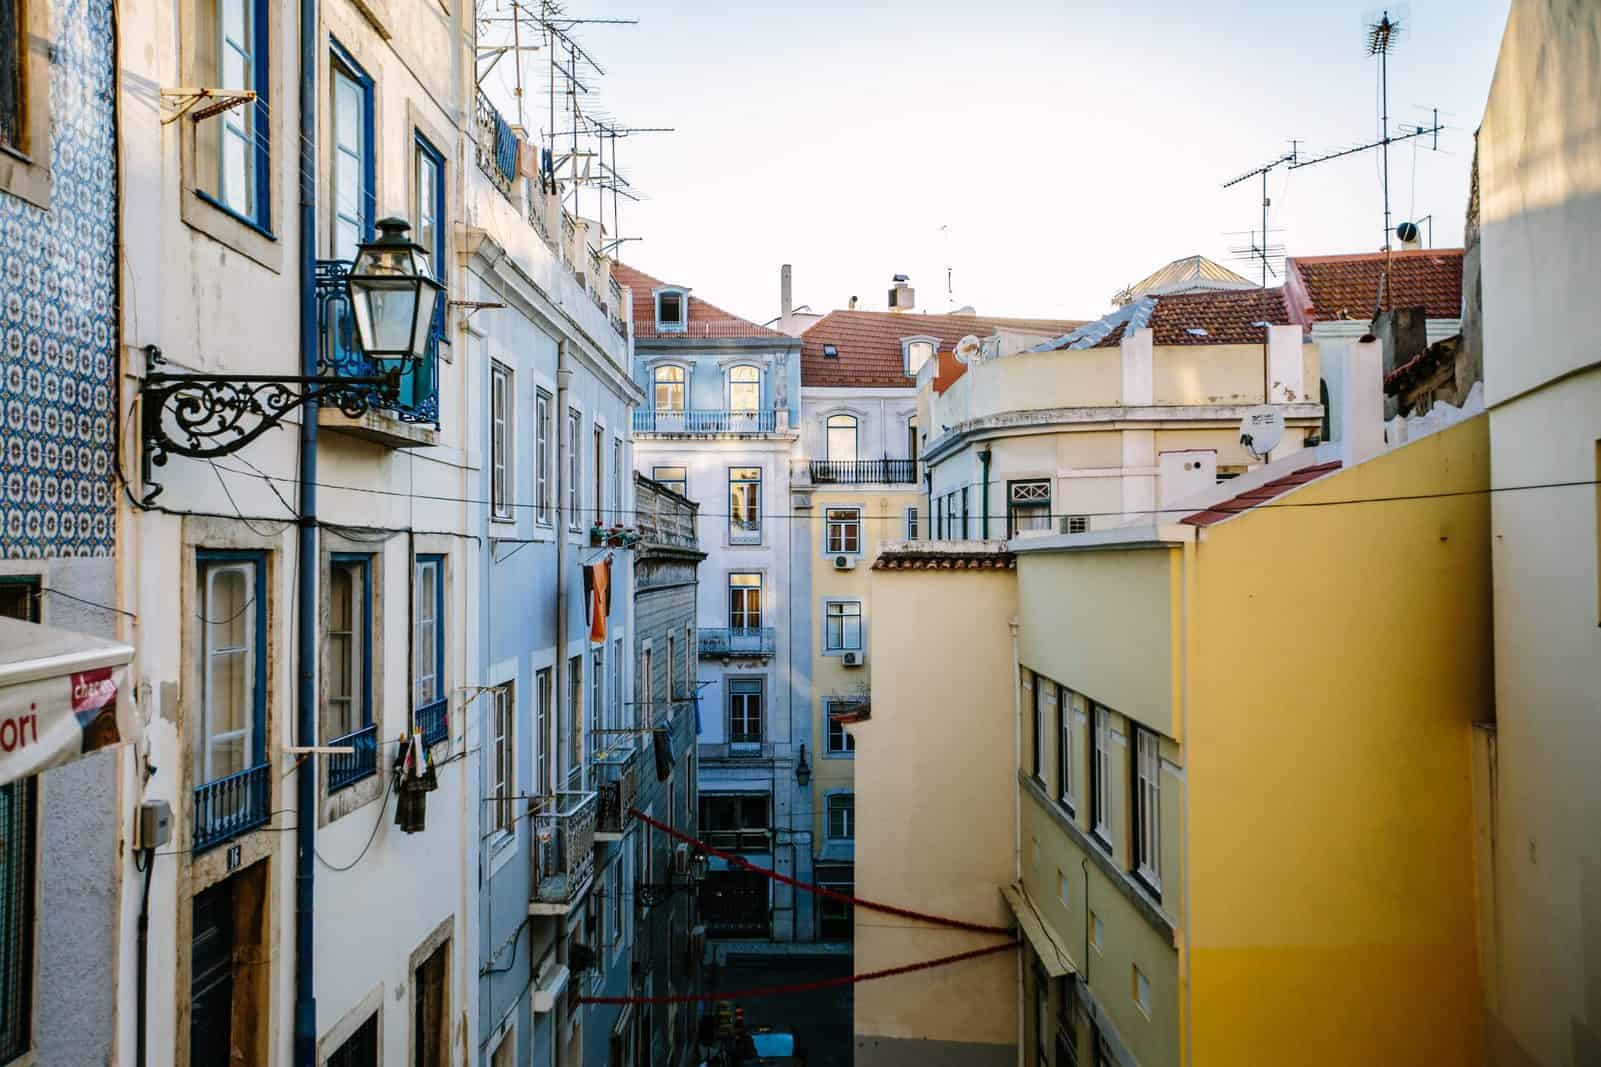 The Best Ways to Spend 24 Hours in Portugal